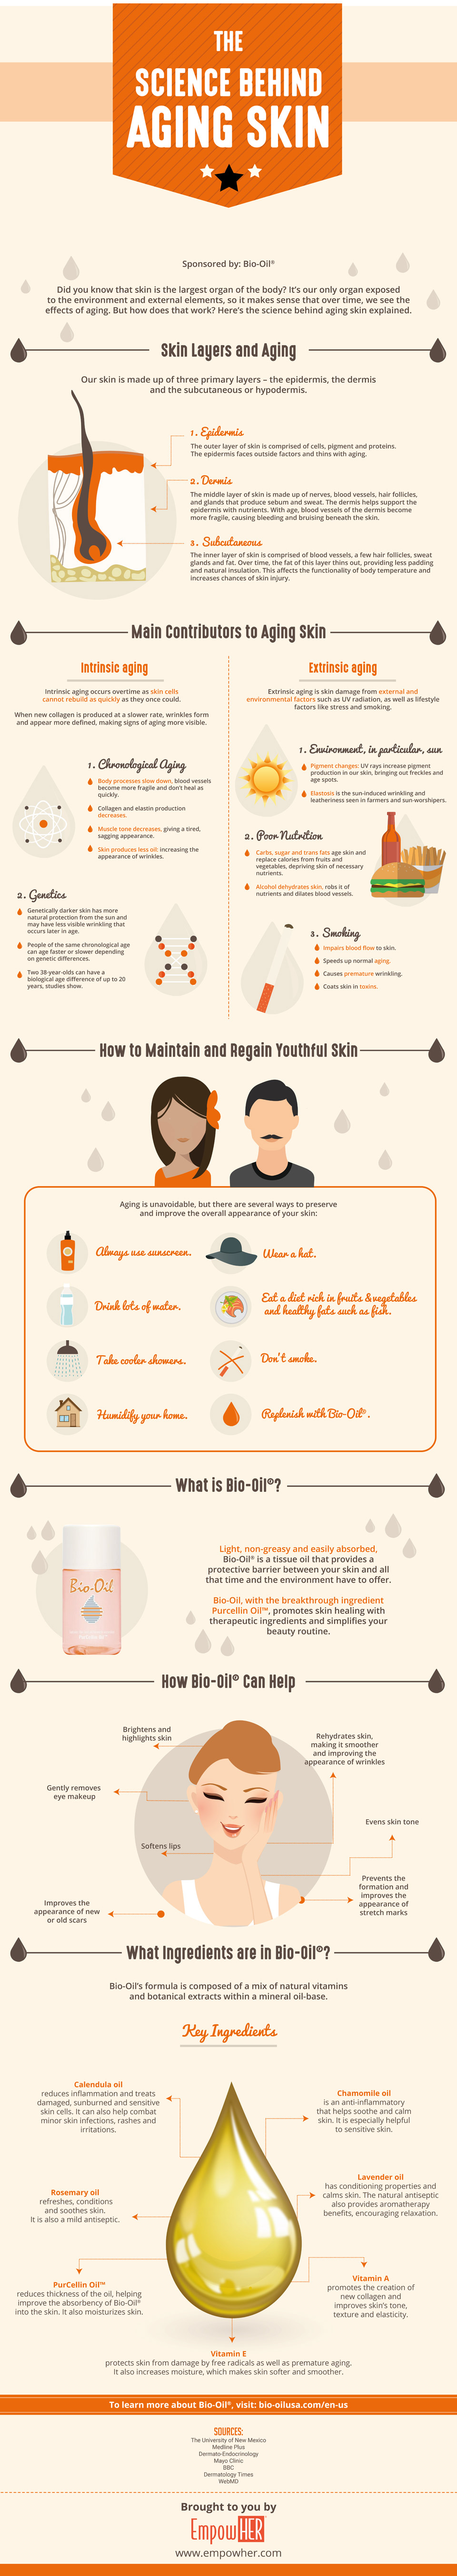 Infographic The Science Behind Aging Skin